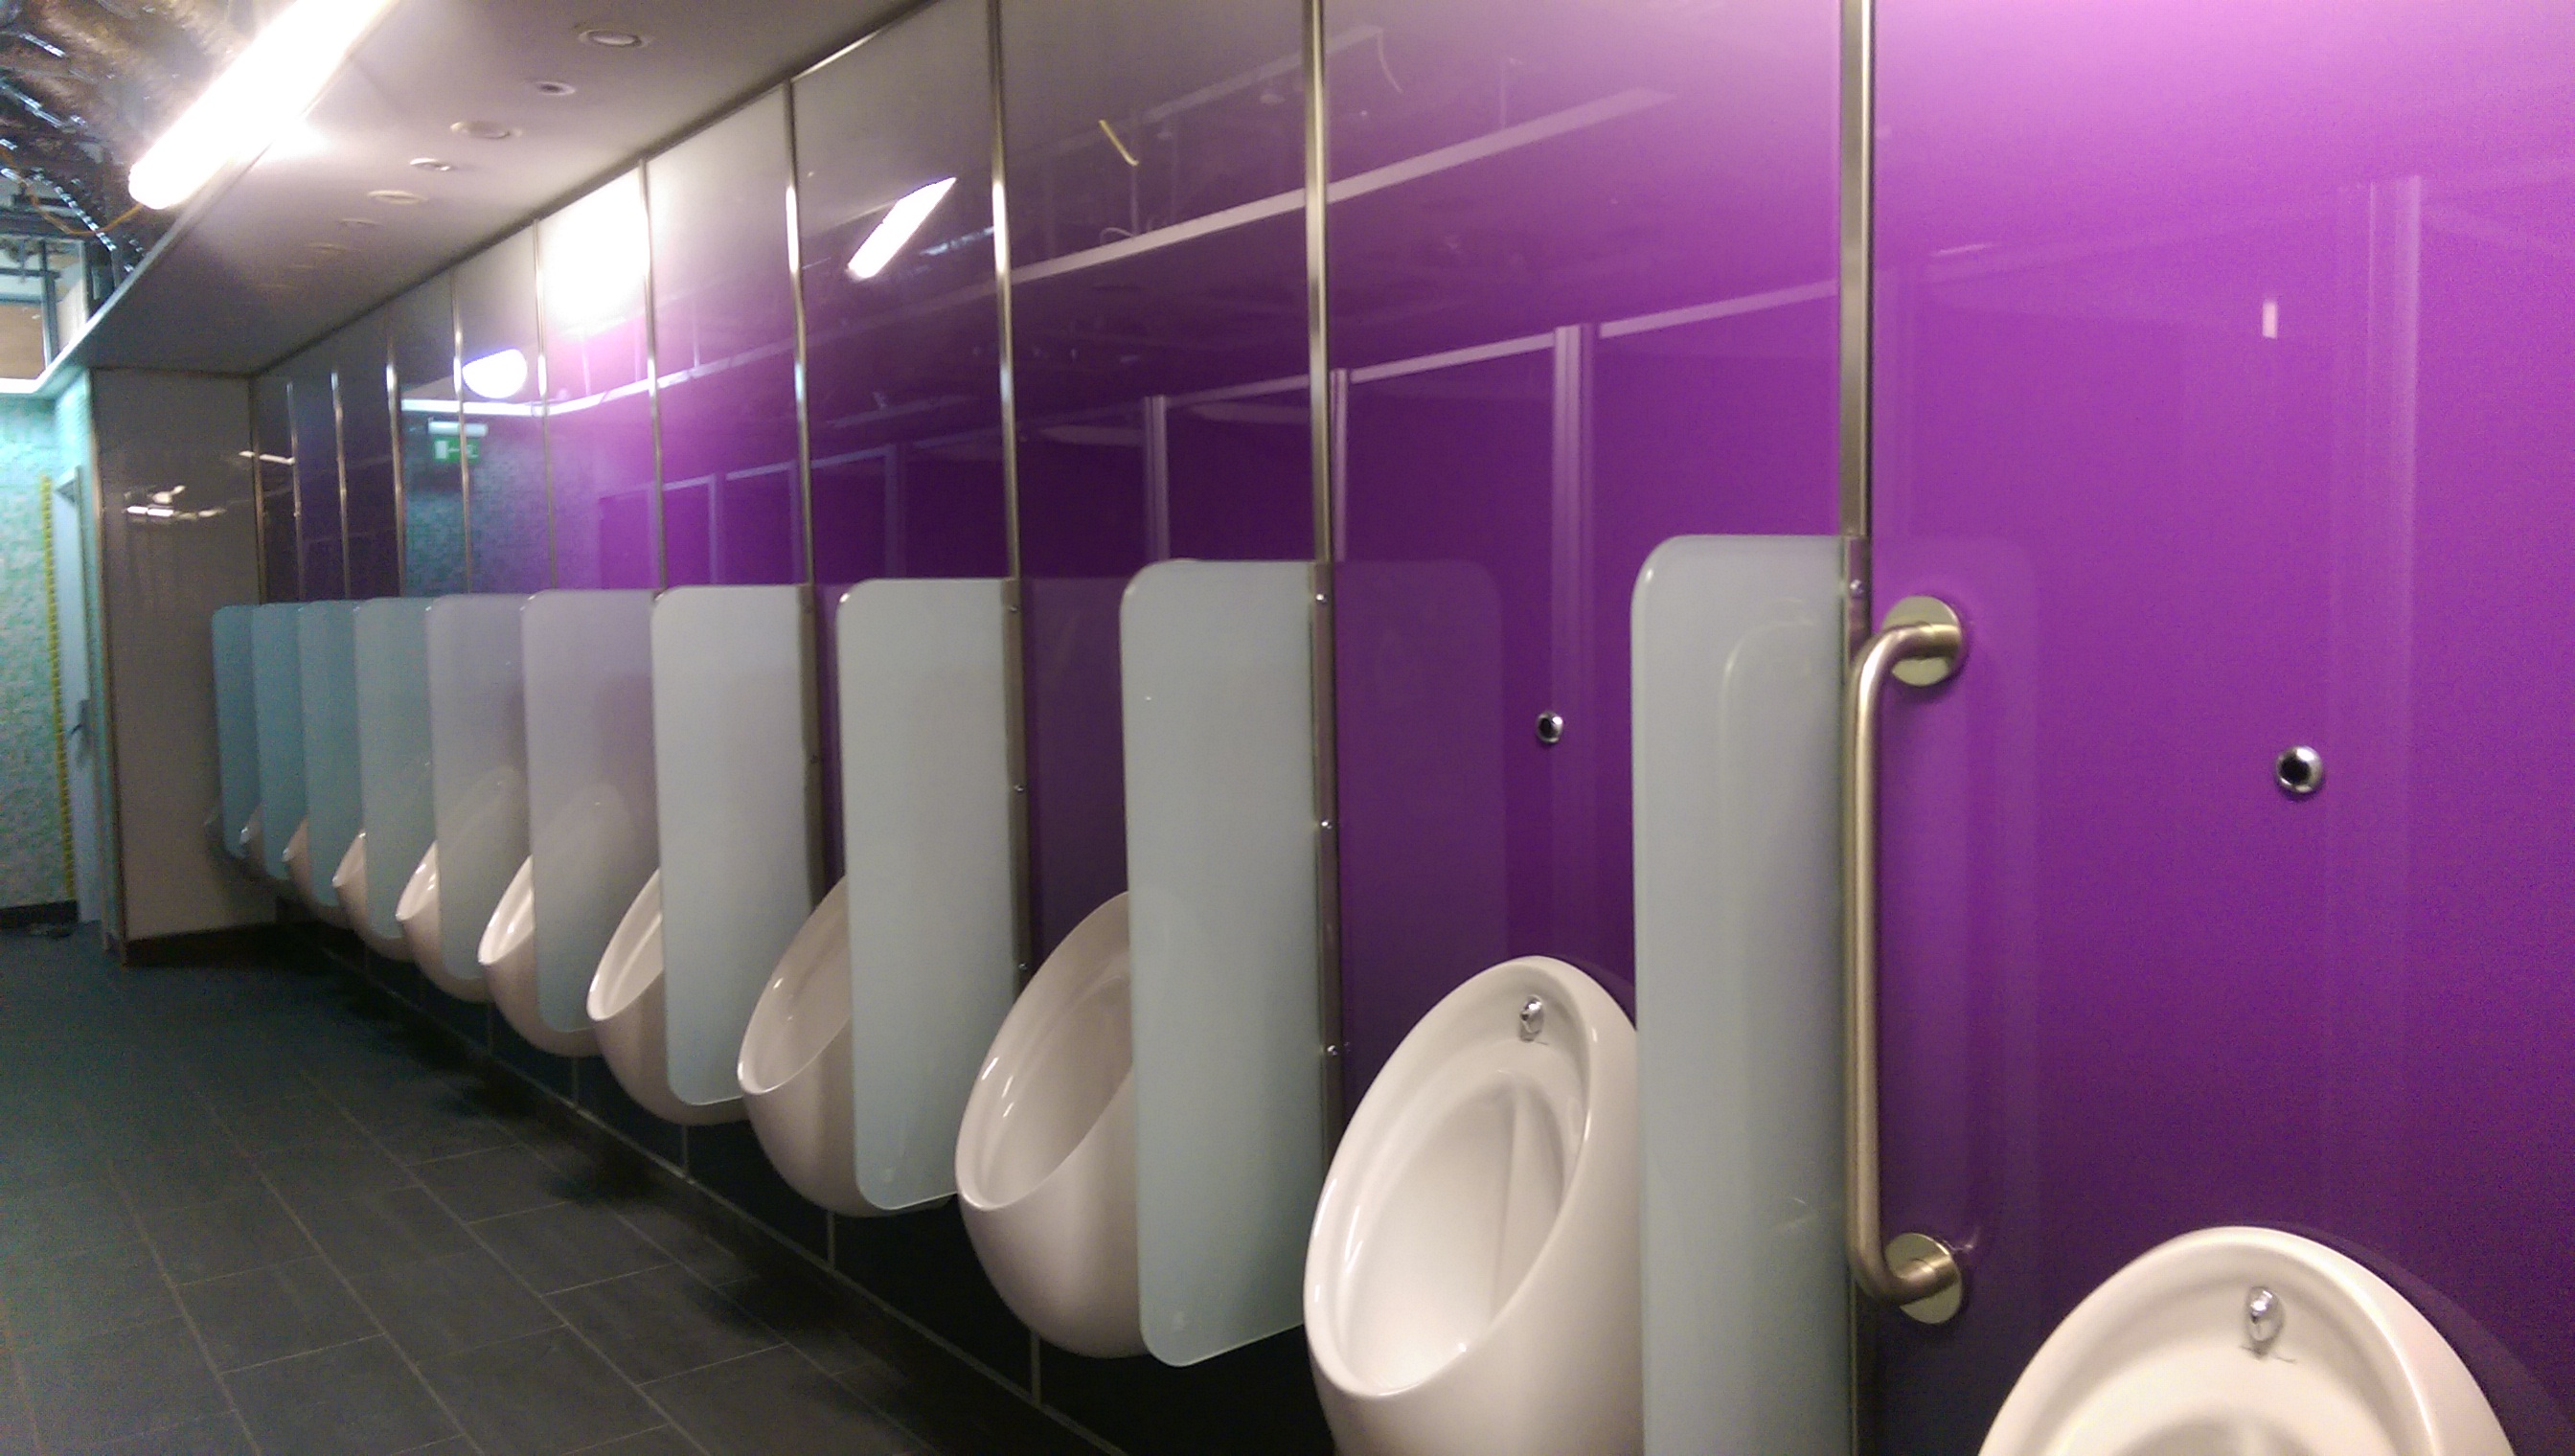 North Terminal Level 10 Toilets